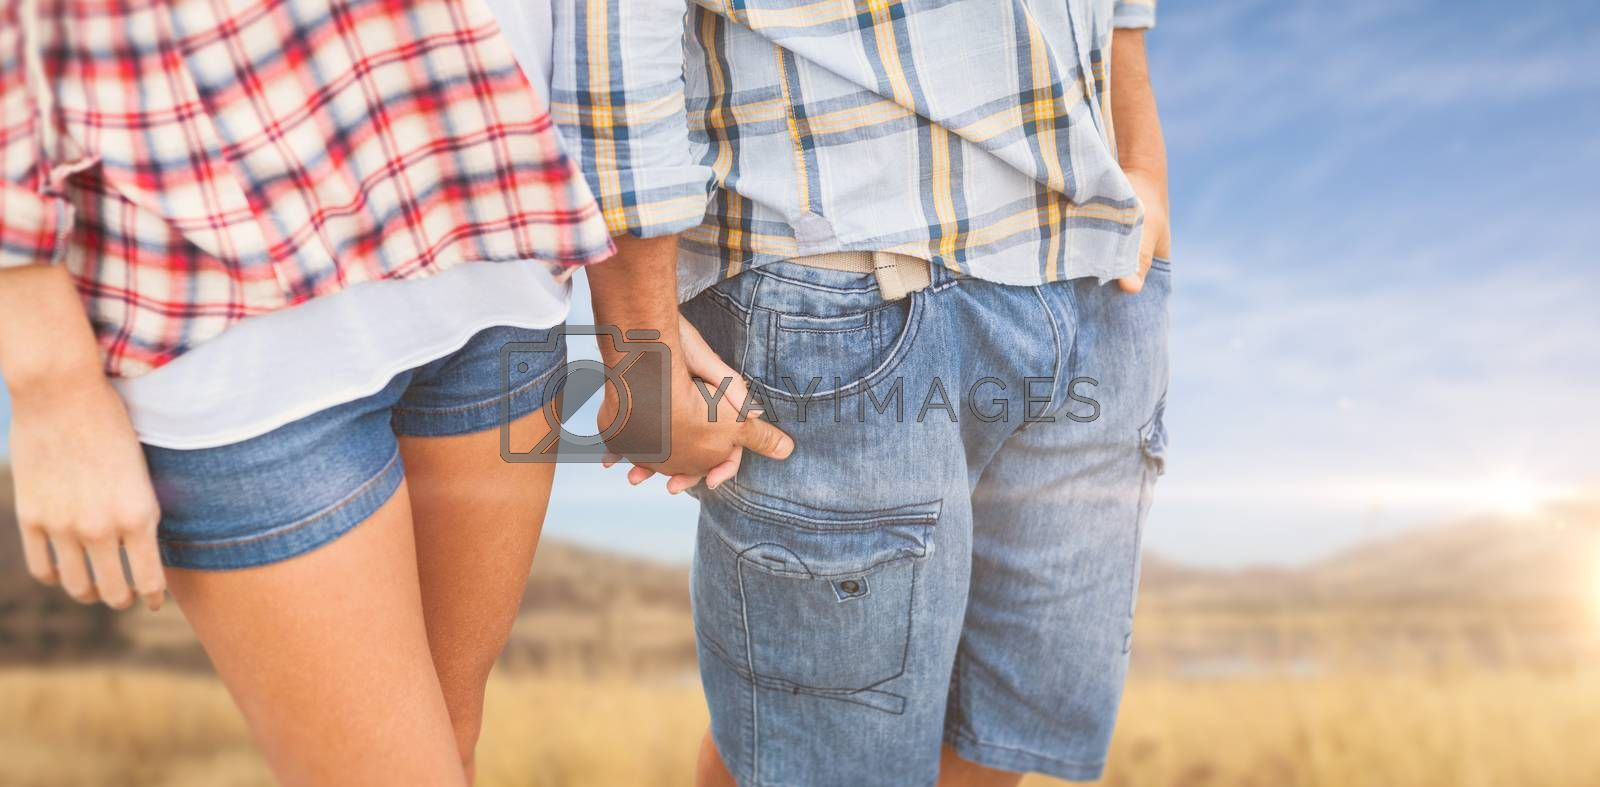 Couple in check shirts and denim holding hands against wheat field